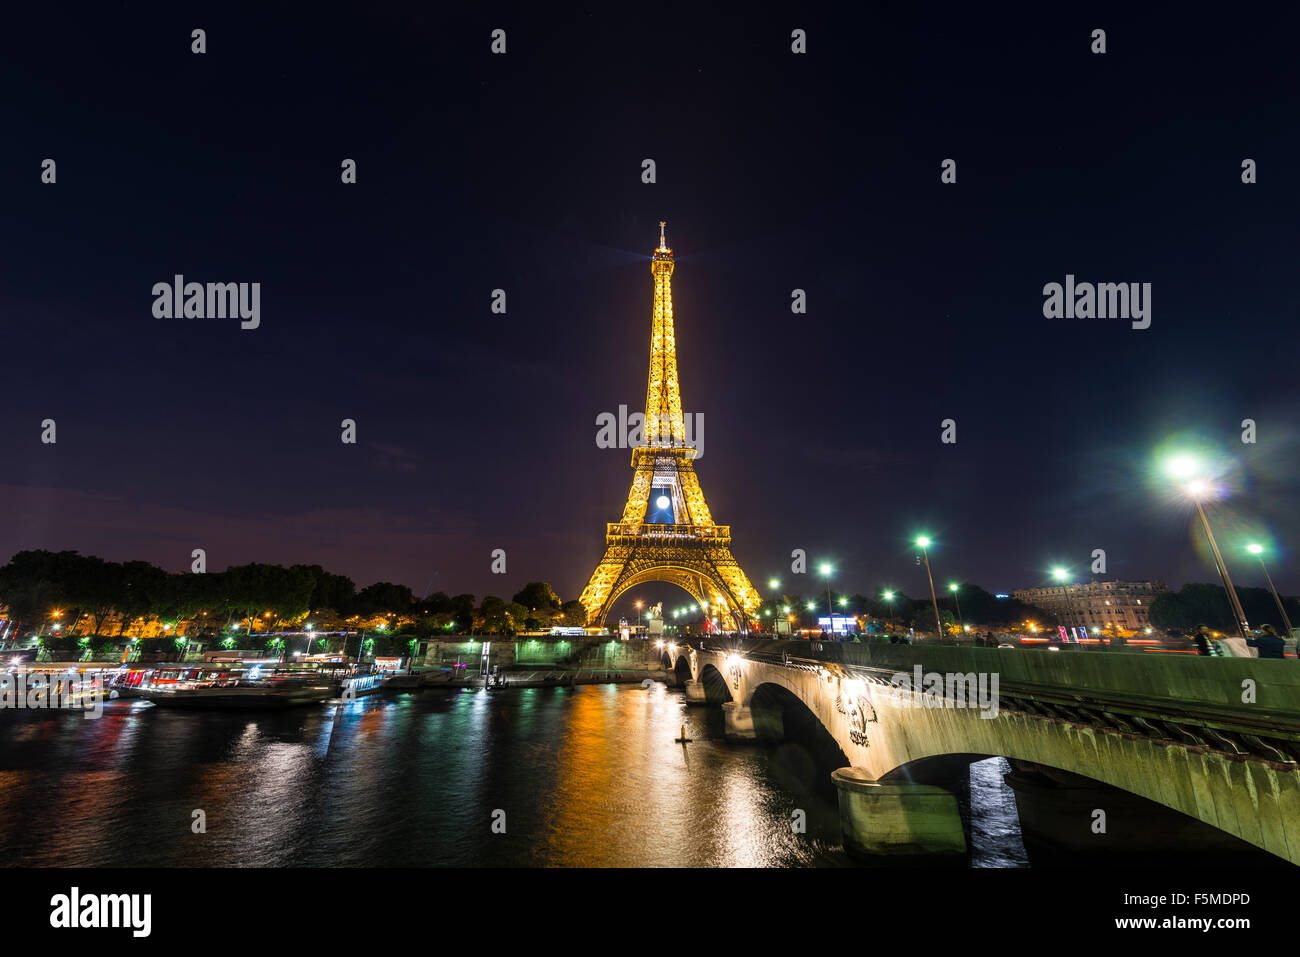 Illuminated Eiffel Tower at night, River Seine, tour Eiffel, Paris, Ile-de-France, France - Stock Image